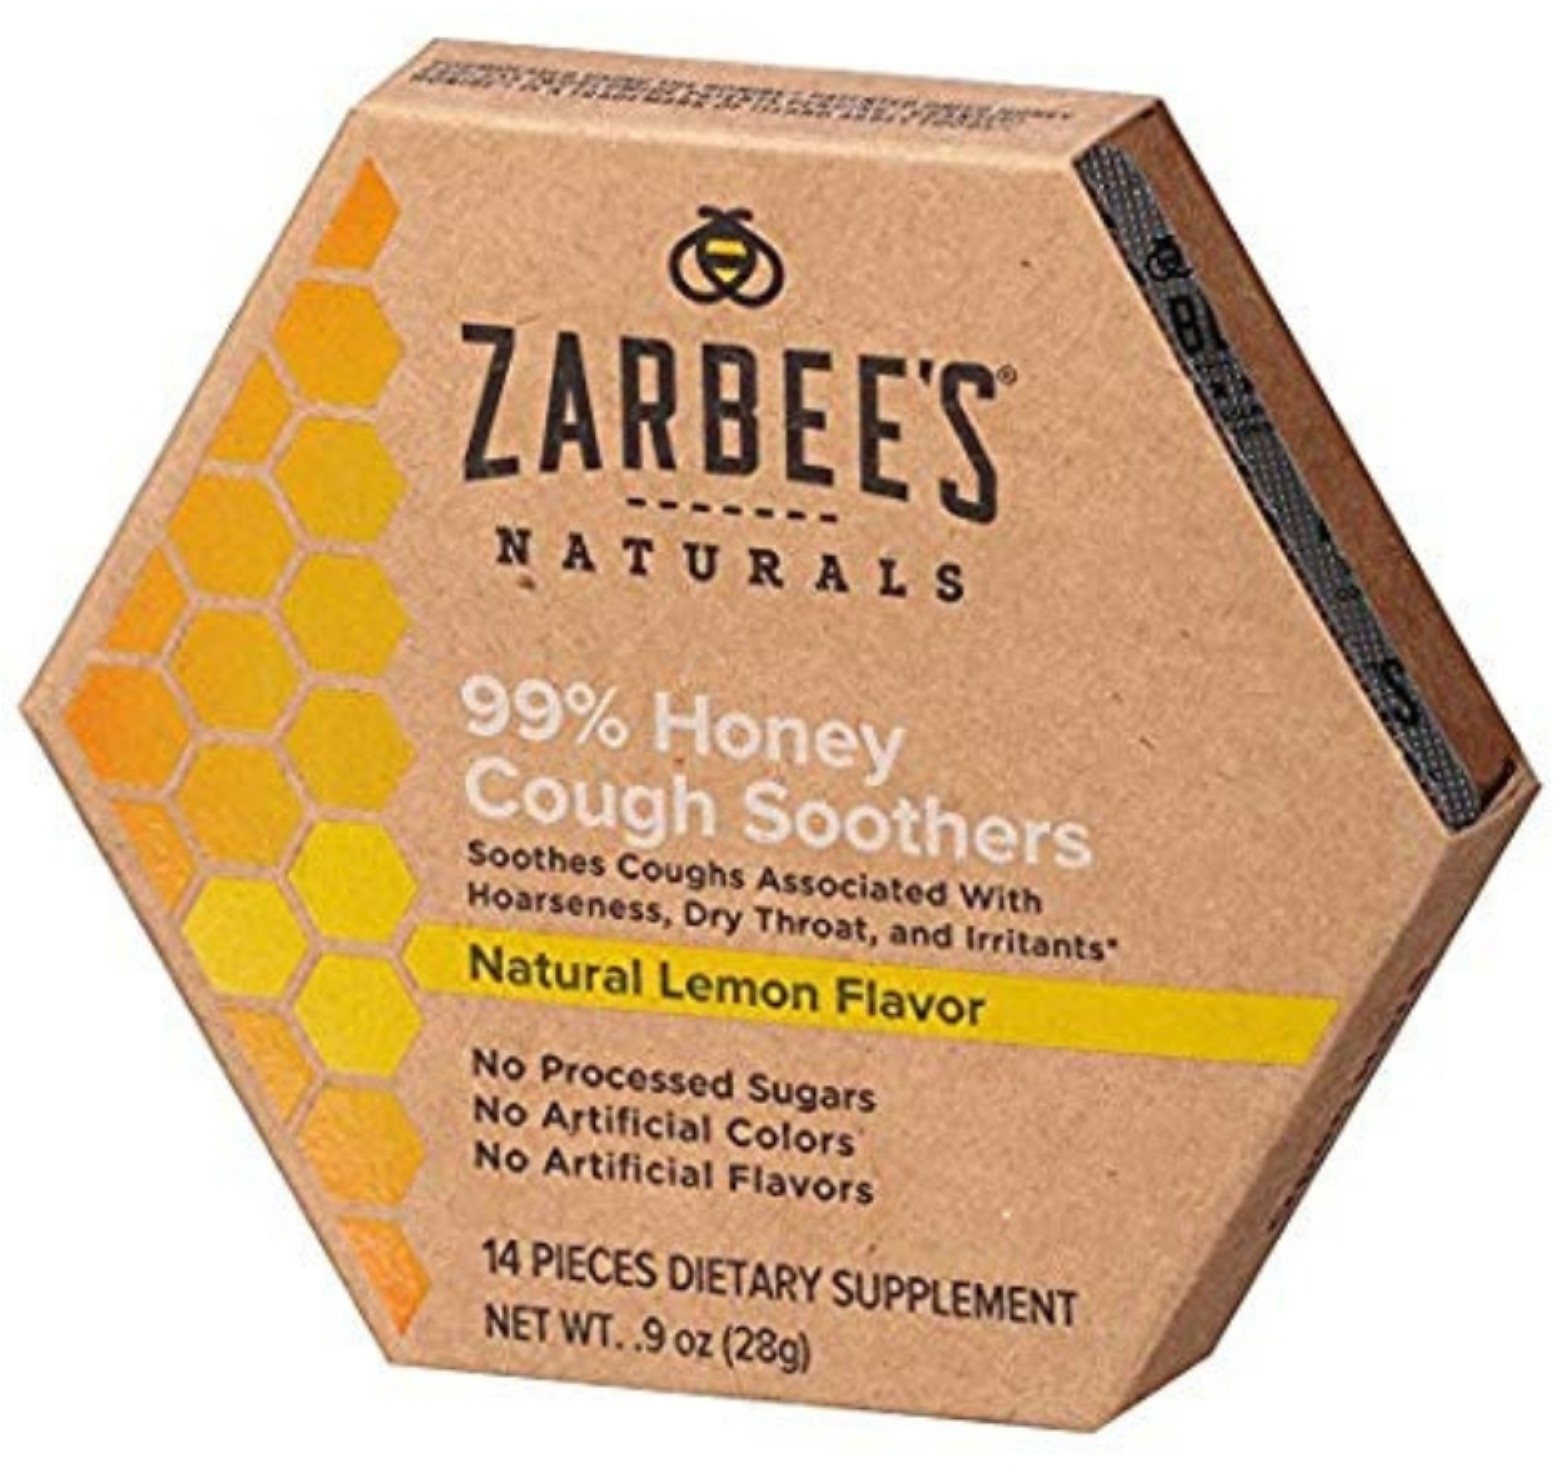 4 Pack - ZarBee's Naturals  99% Honey Cough Soothers, Lemon 0.9 oz